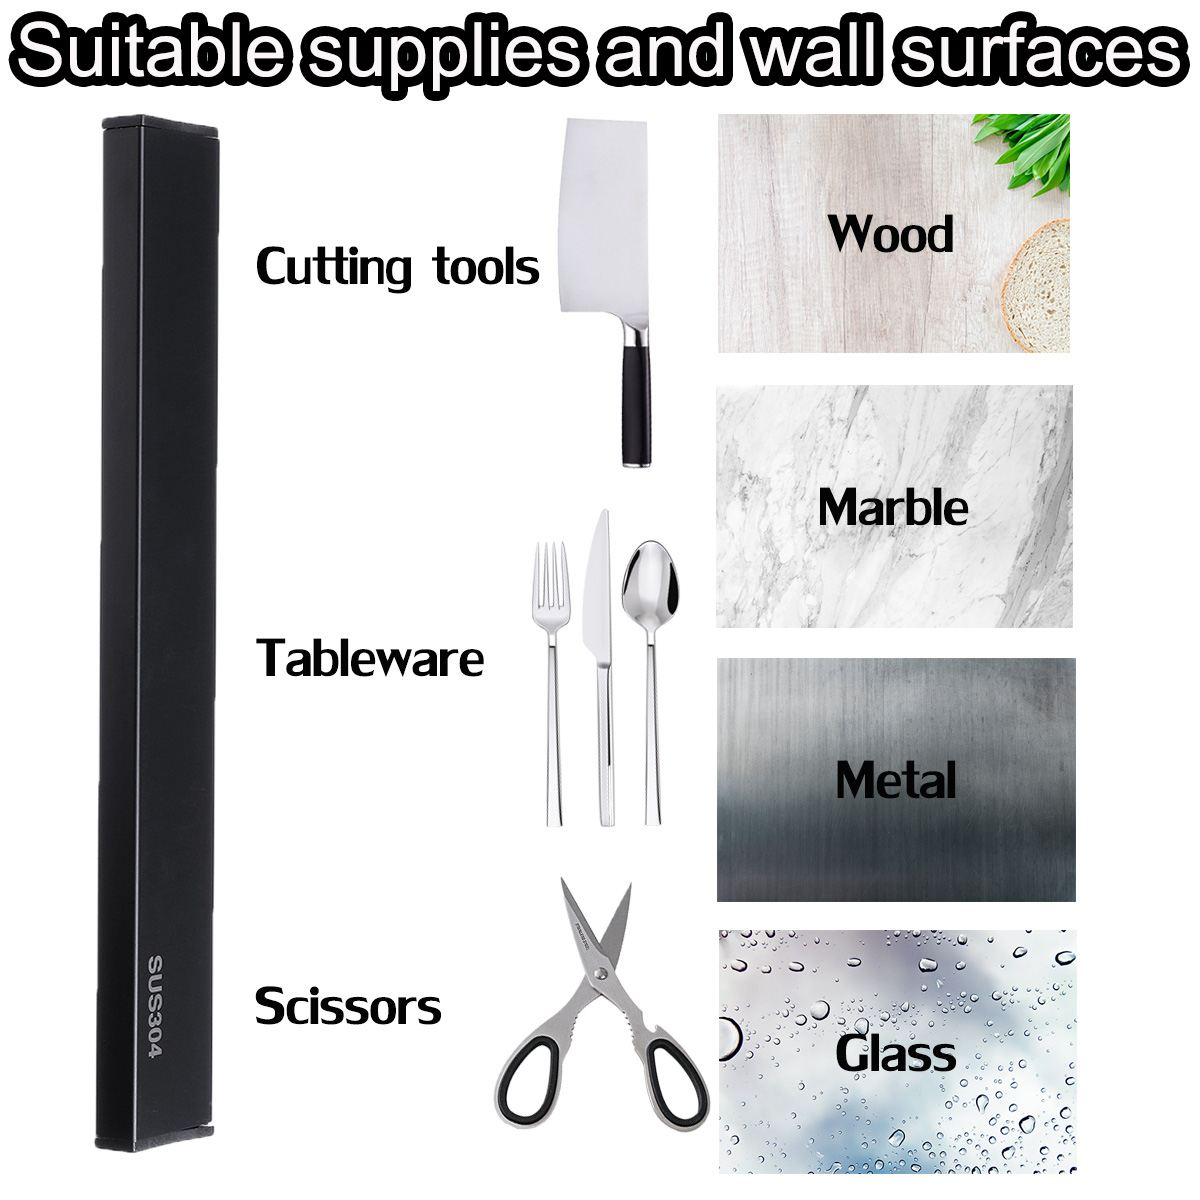 30/40/50cm Length Magnetic Knifes Rack Self-adhesive Tableware Scissors Cutting Tool Holder Stainless Steel Knife Holder Stand